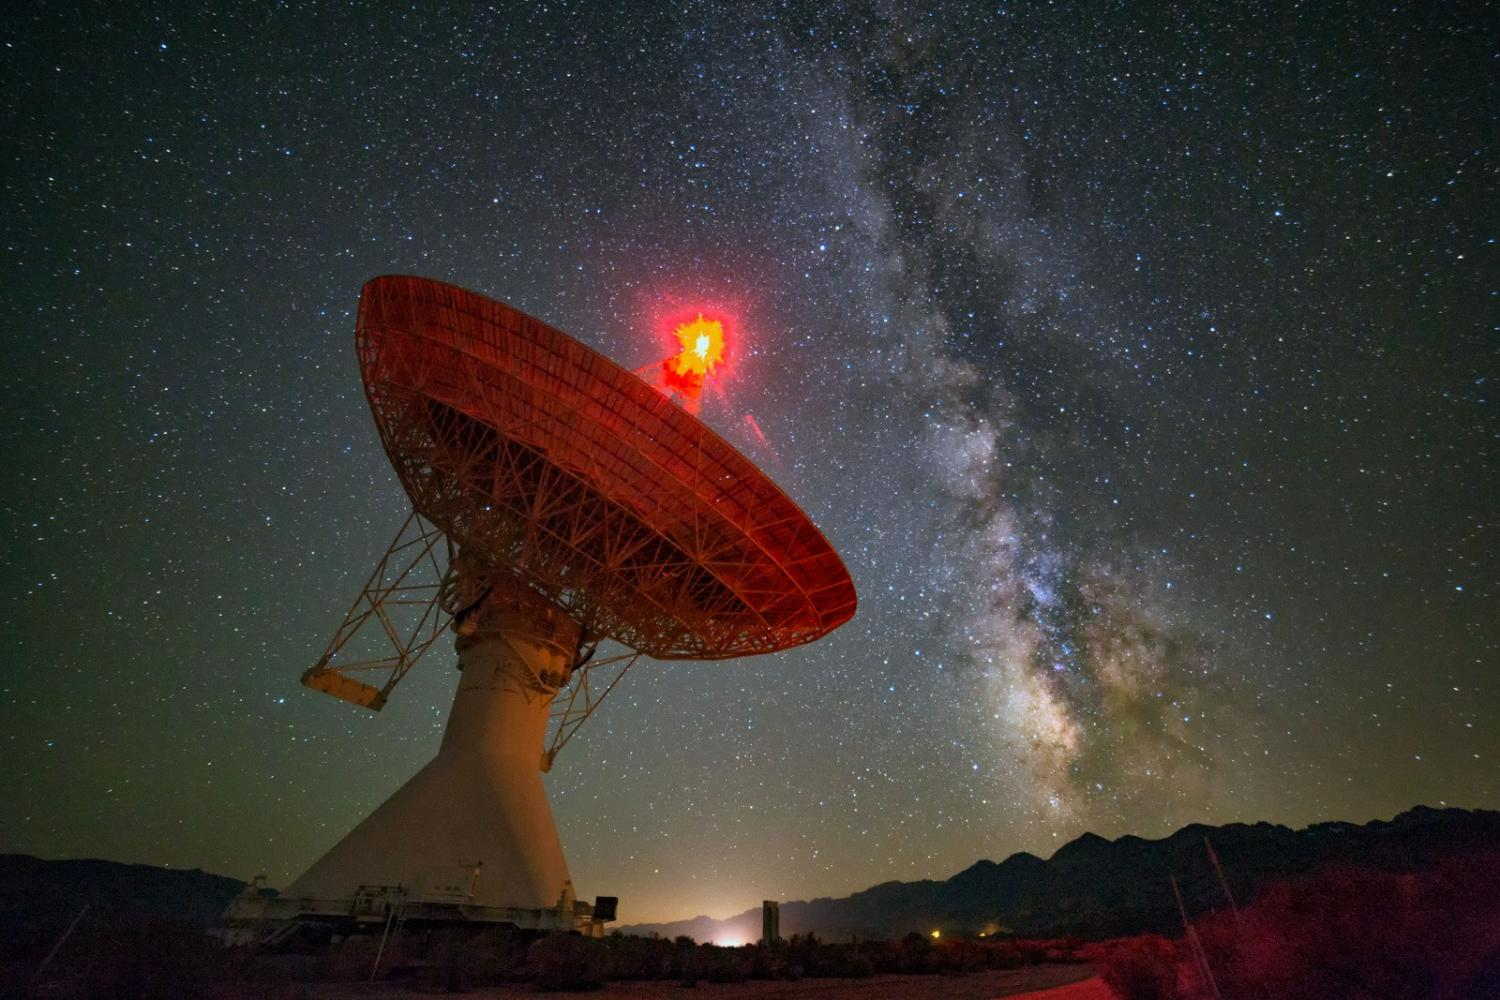 SETI: All About the Search for Extraterrestrial Intelligence (Infographic)